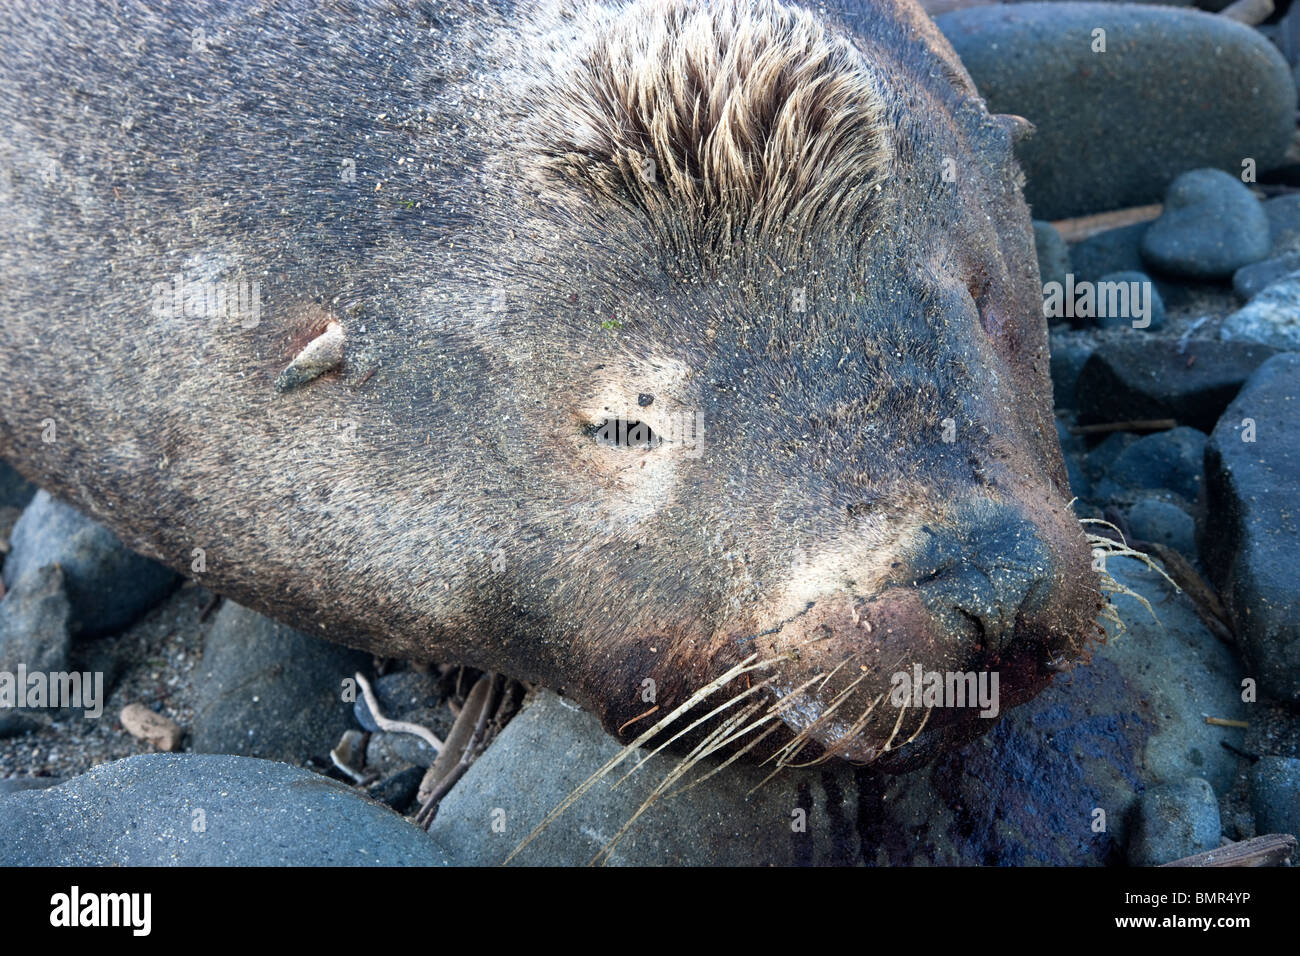 Deceased 'crested' Sea Lion bull, beach, portrait. - Stock Image